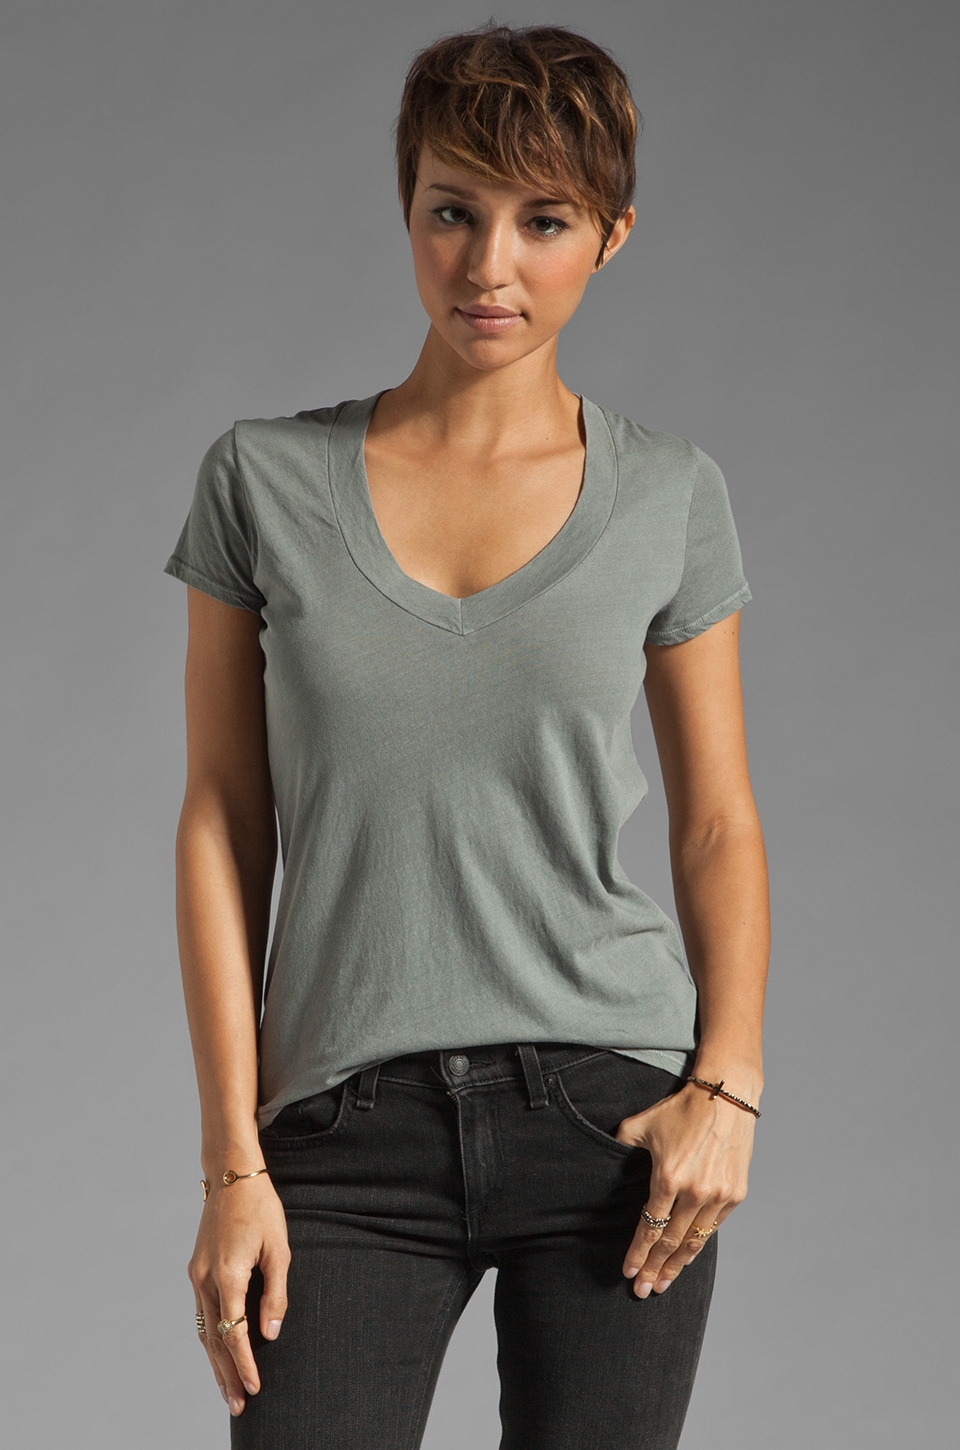 James Perse Short Sleeve Casual V Neck Tee in Silverfox